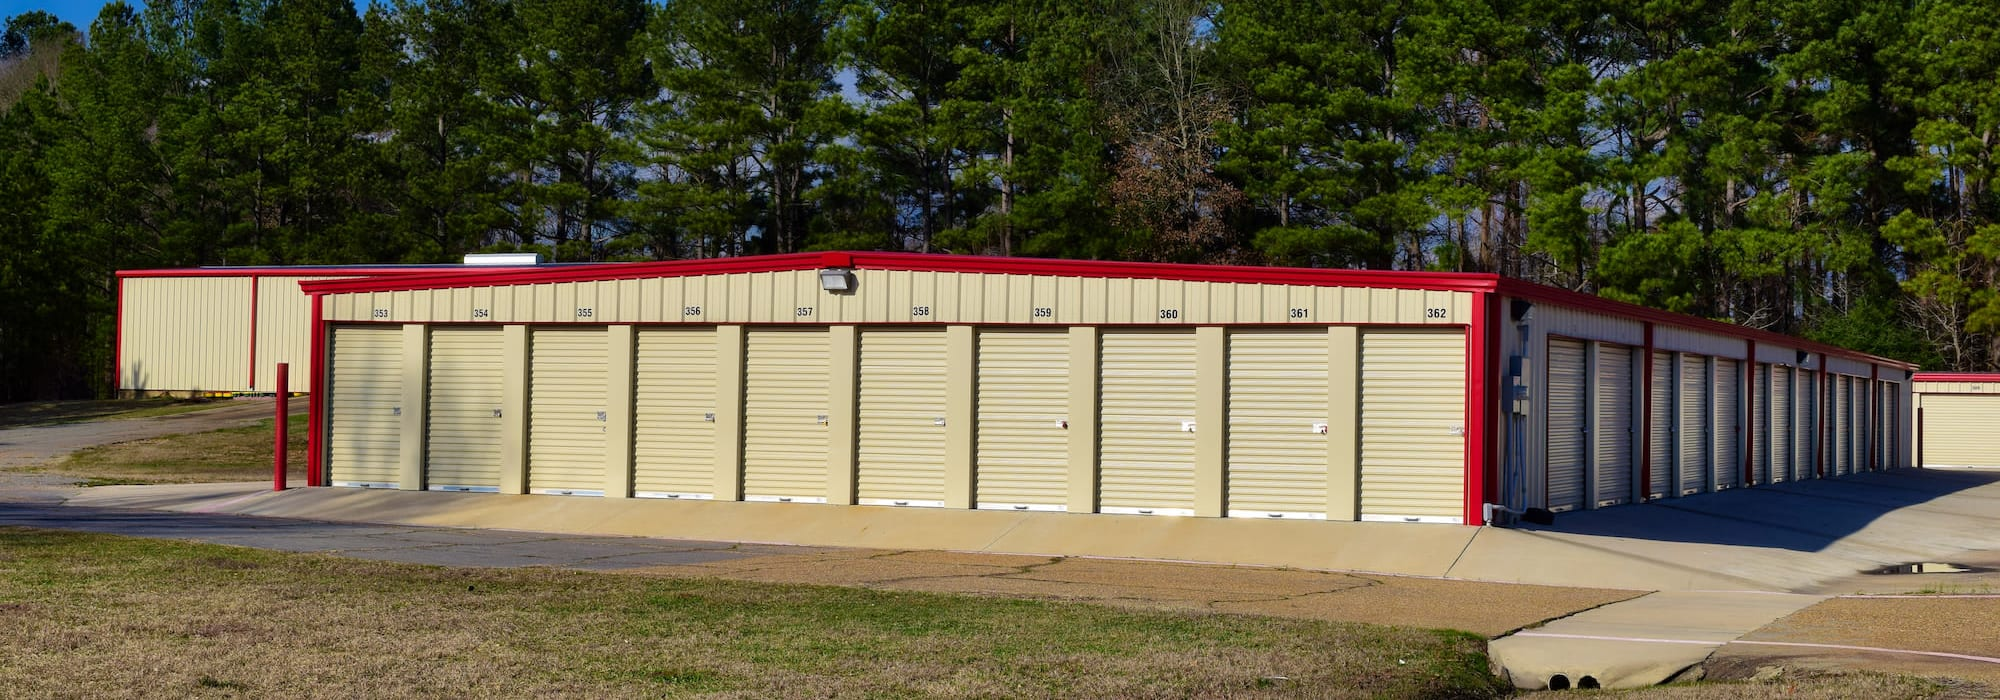 Storage Units at Lockaway Storage in Texarkana, Texas